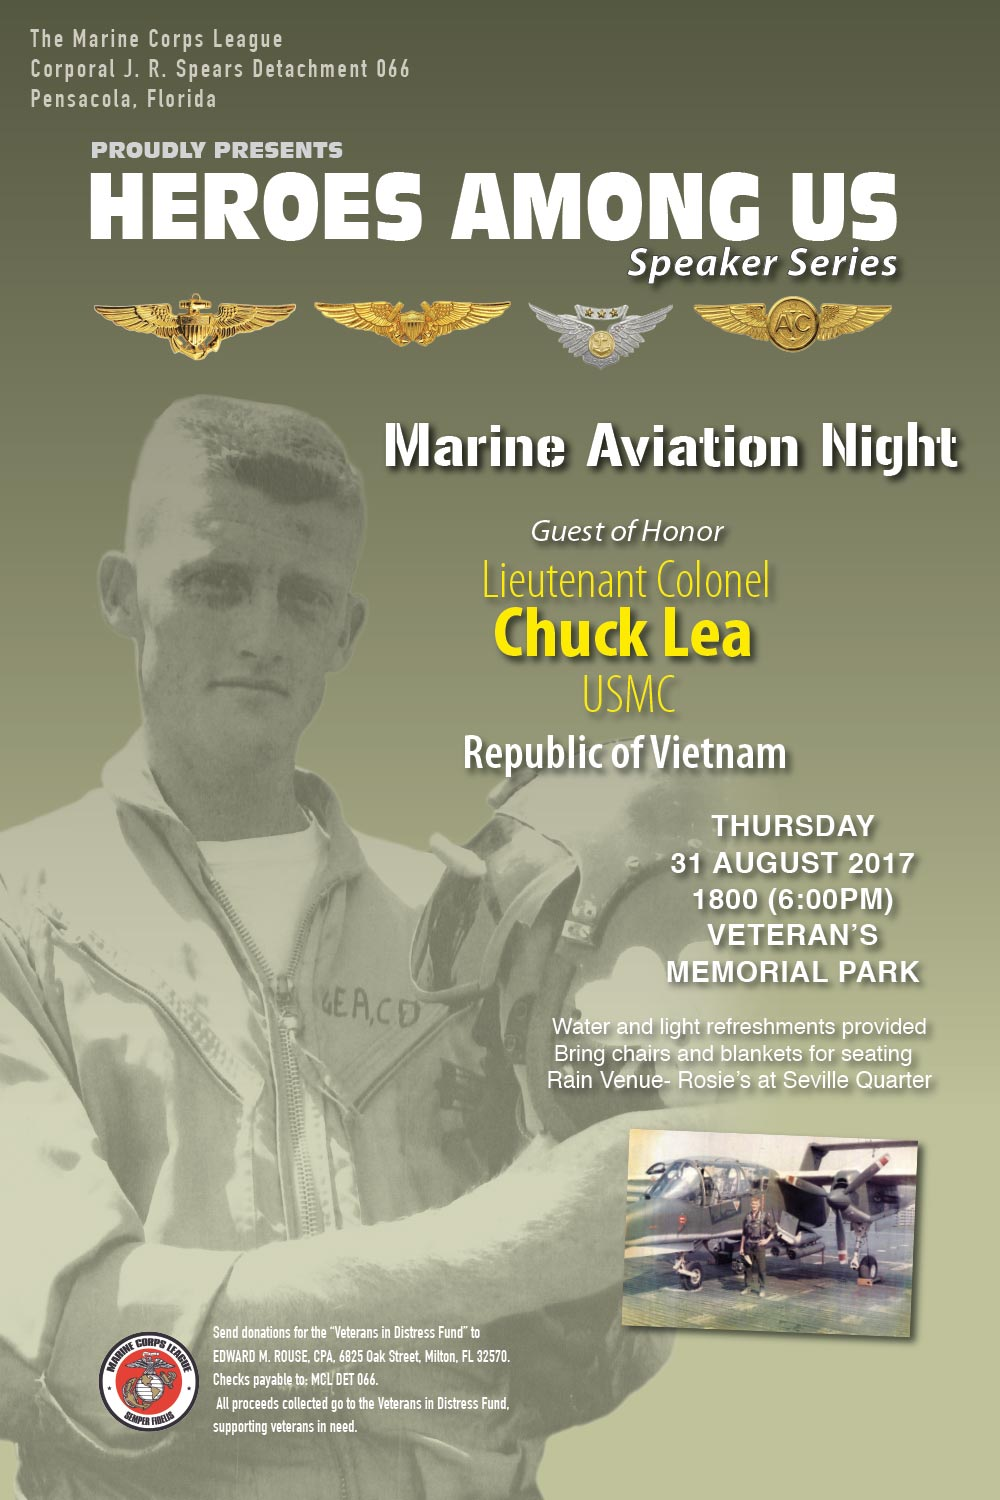 HAU - Marine Aviation Night